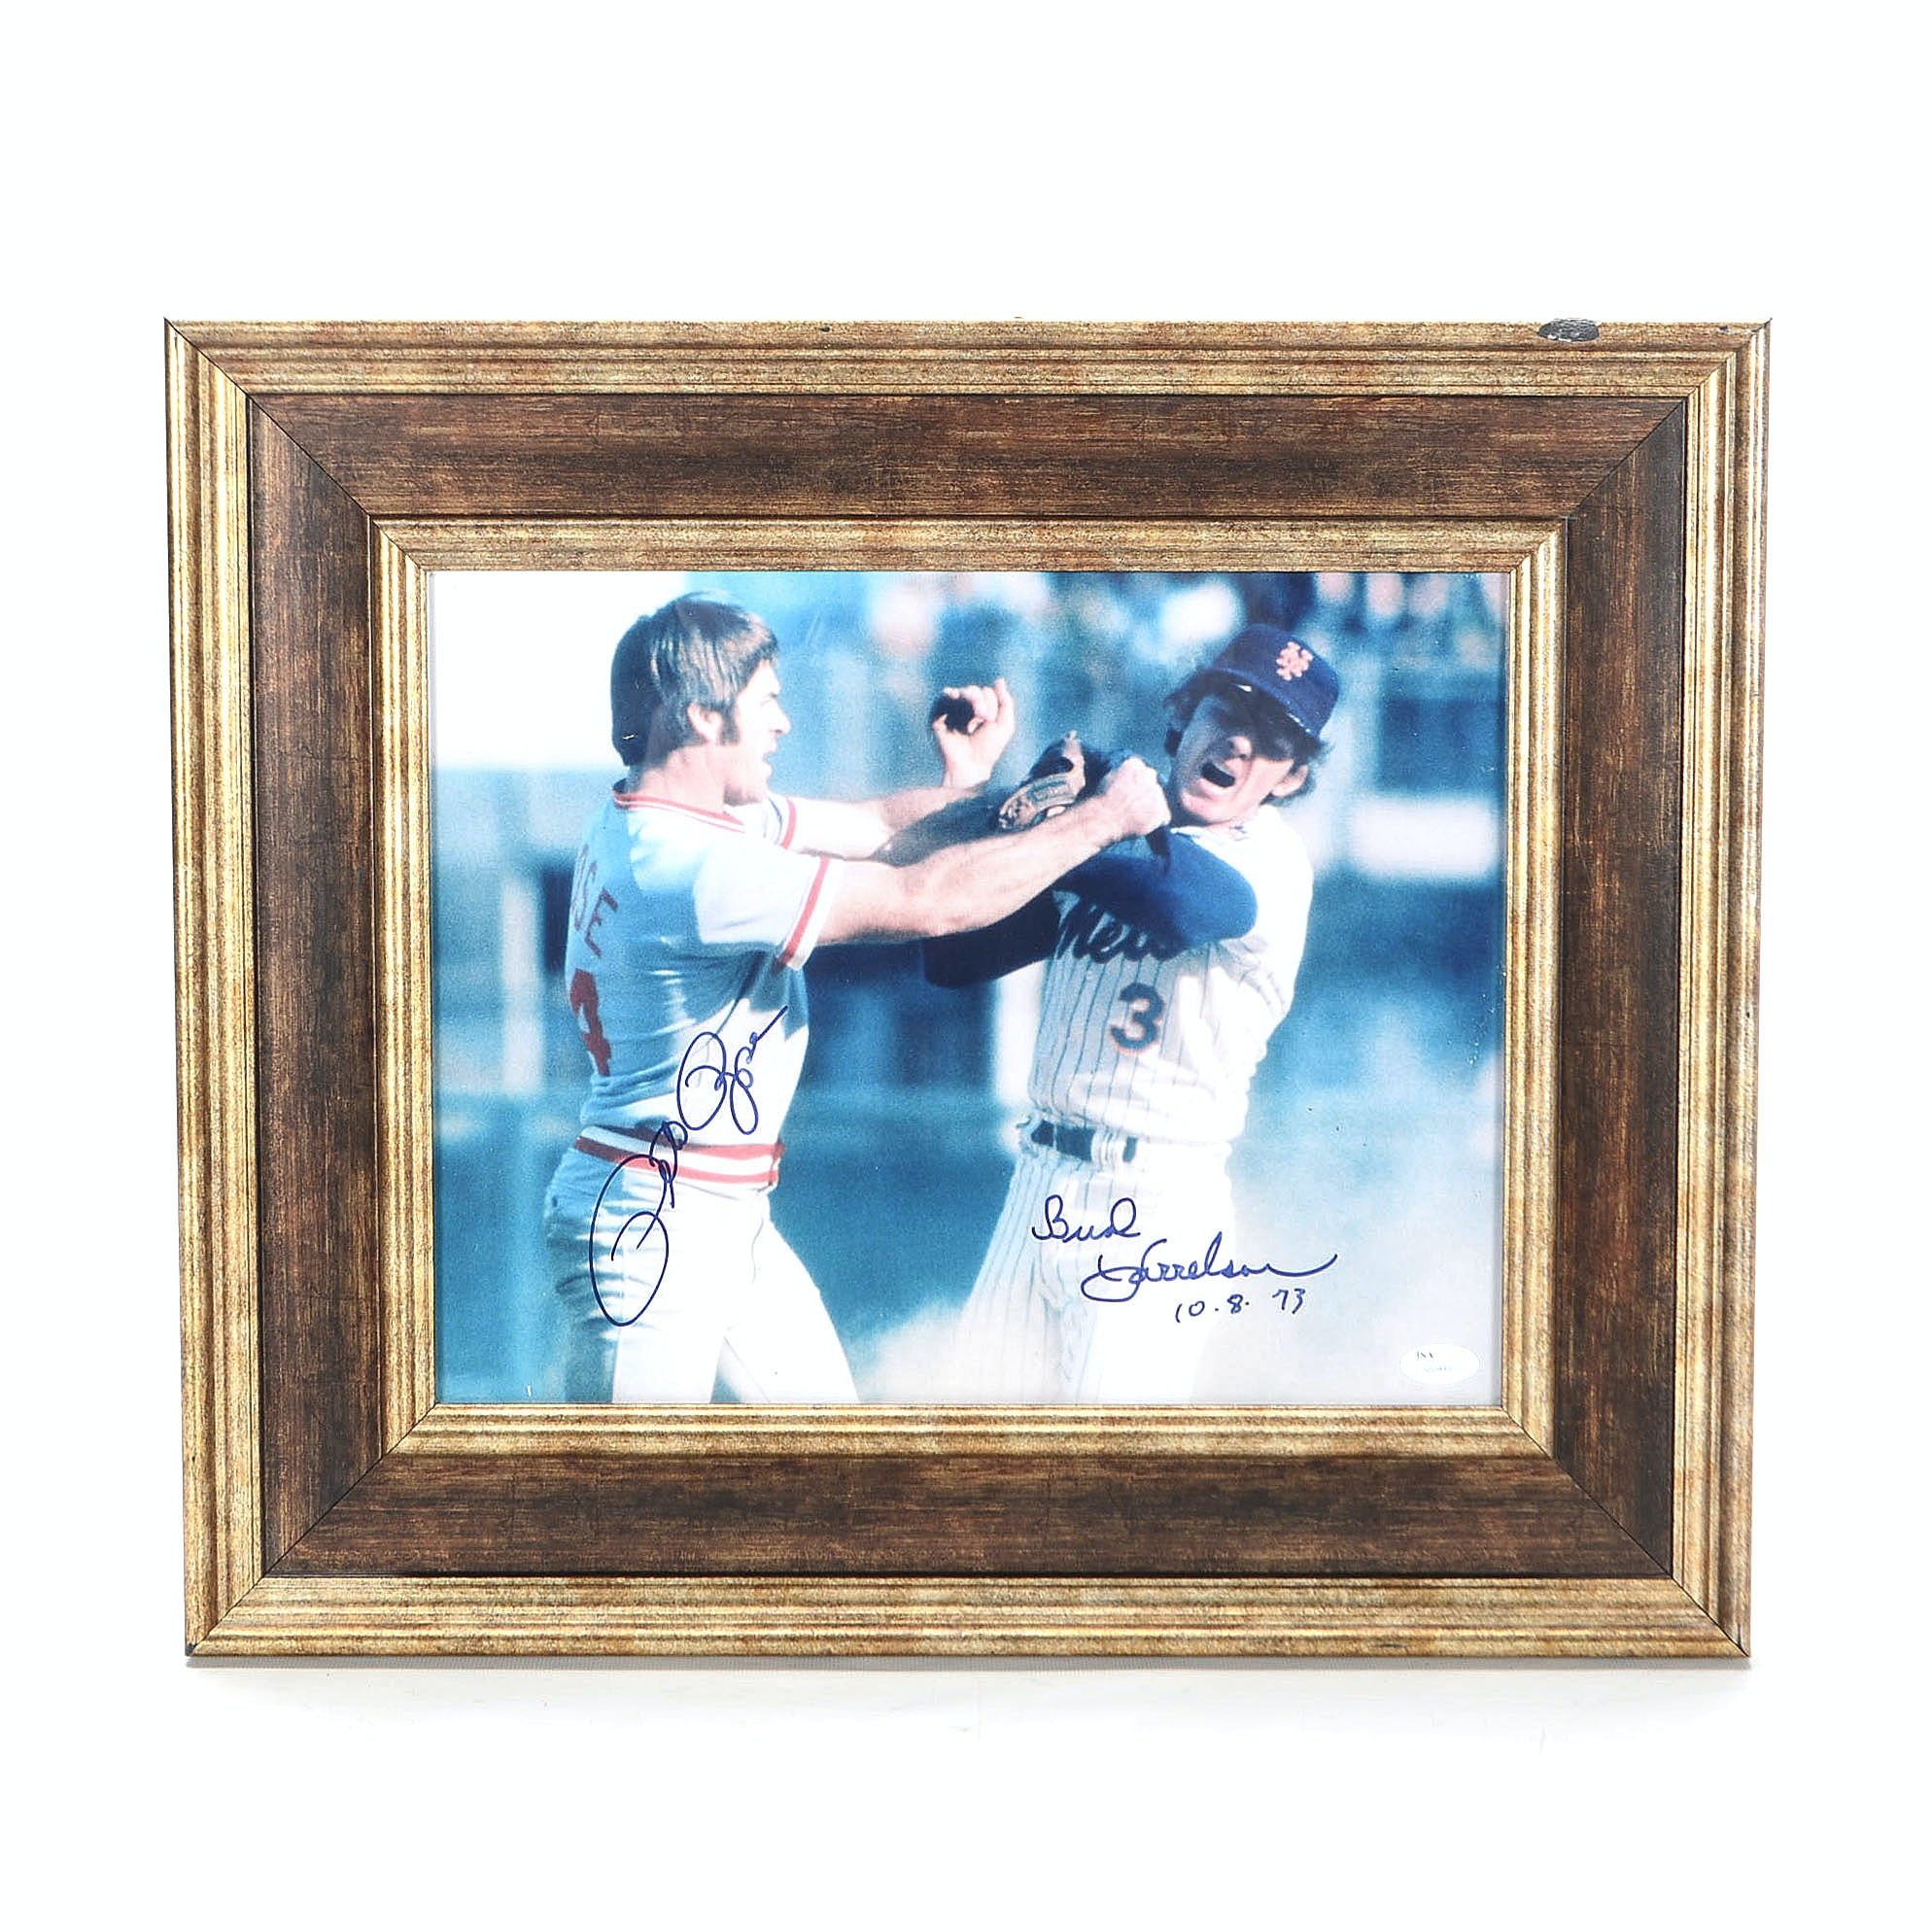 Rose and Harrelson Autographed Photo  COA